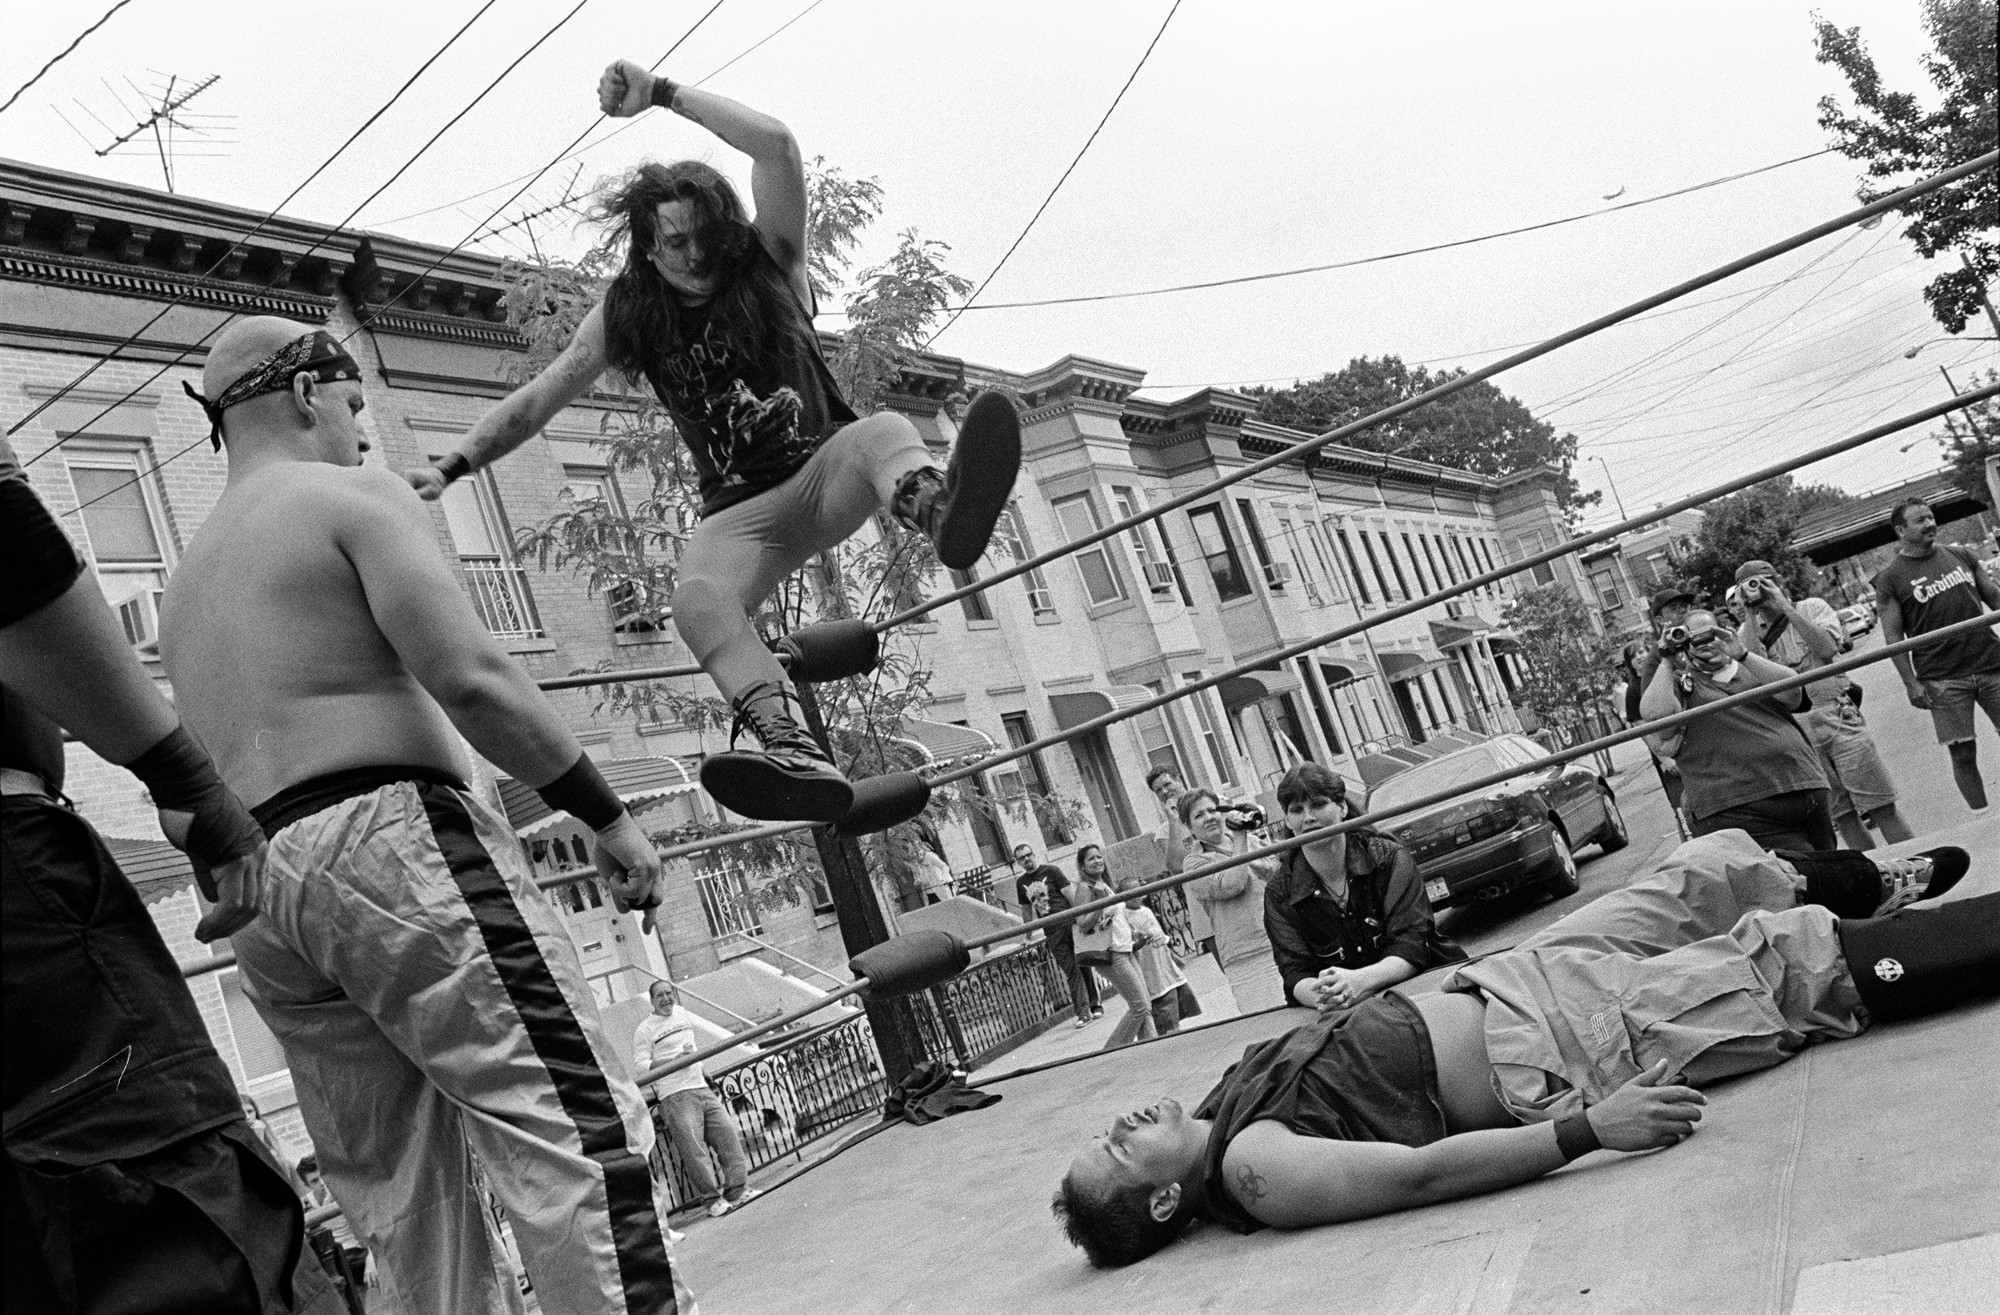 photos amateur wrestling in brooklyn before craft cocktails